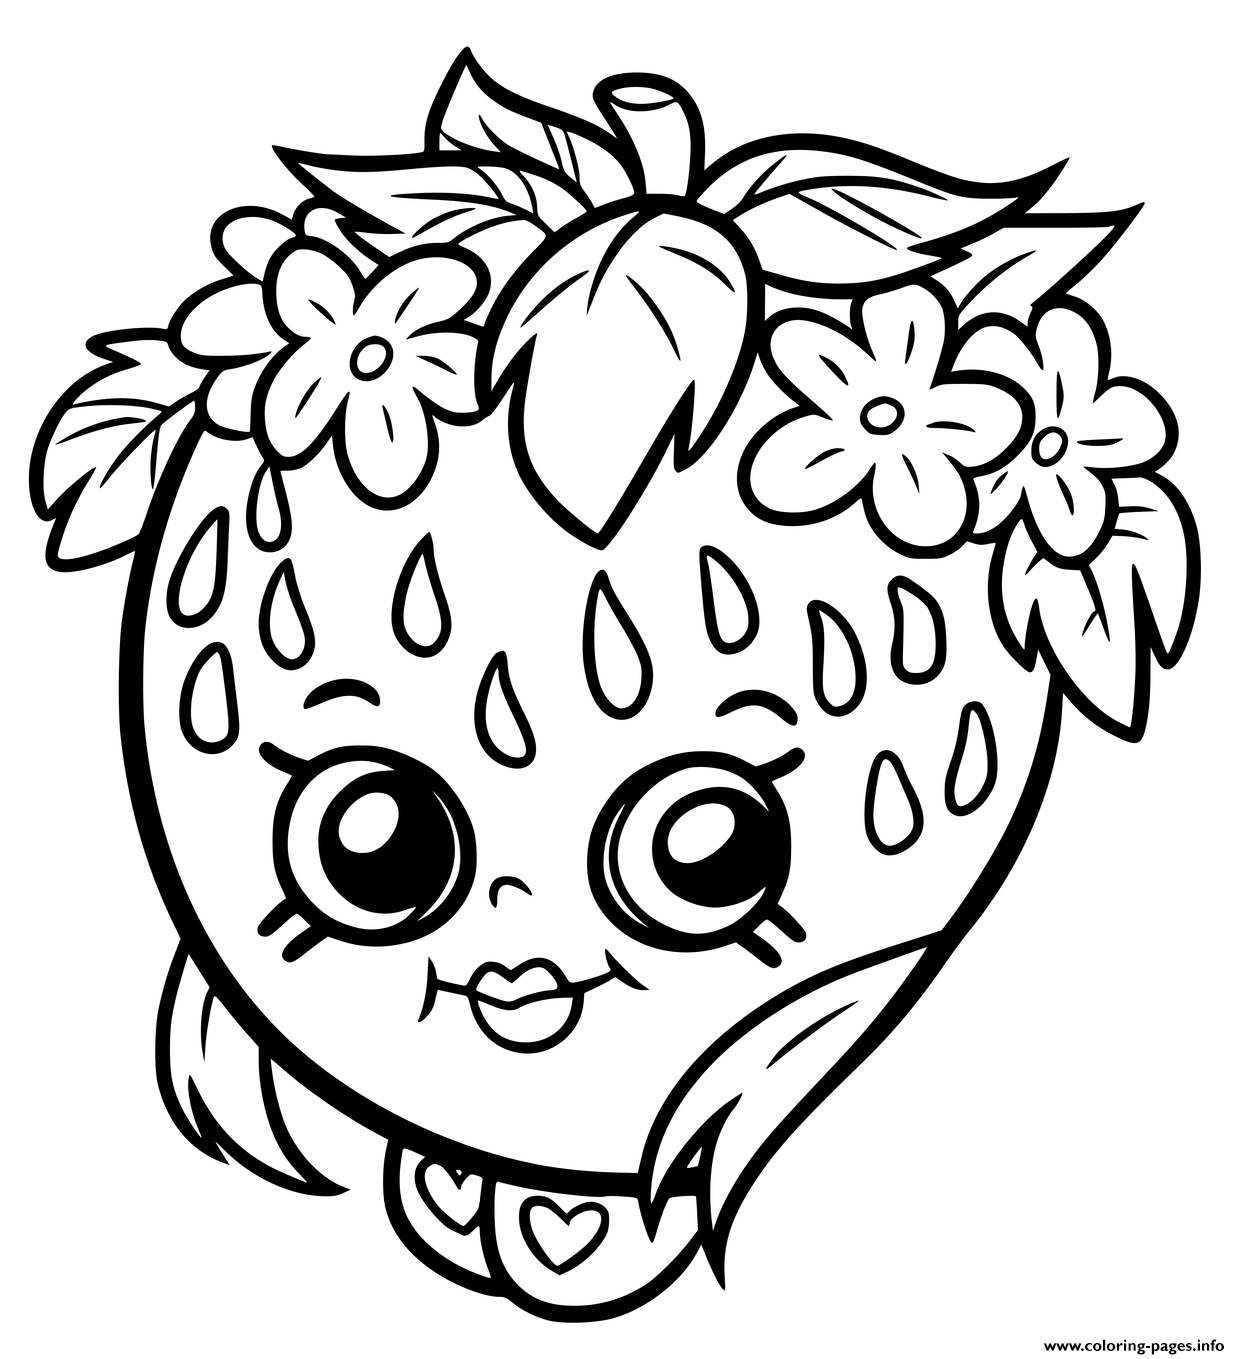 Shopkins Strawberry Smile Coloring Pages Printable